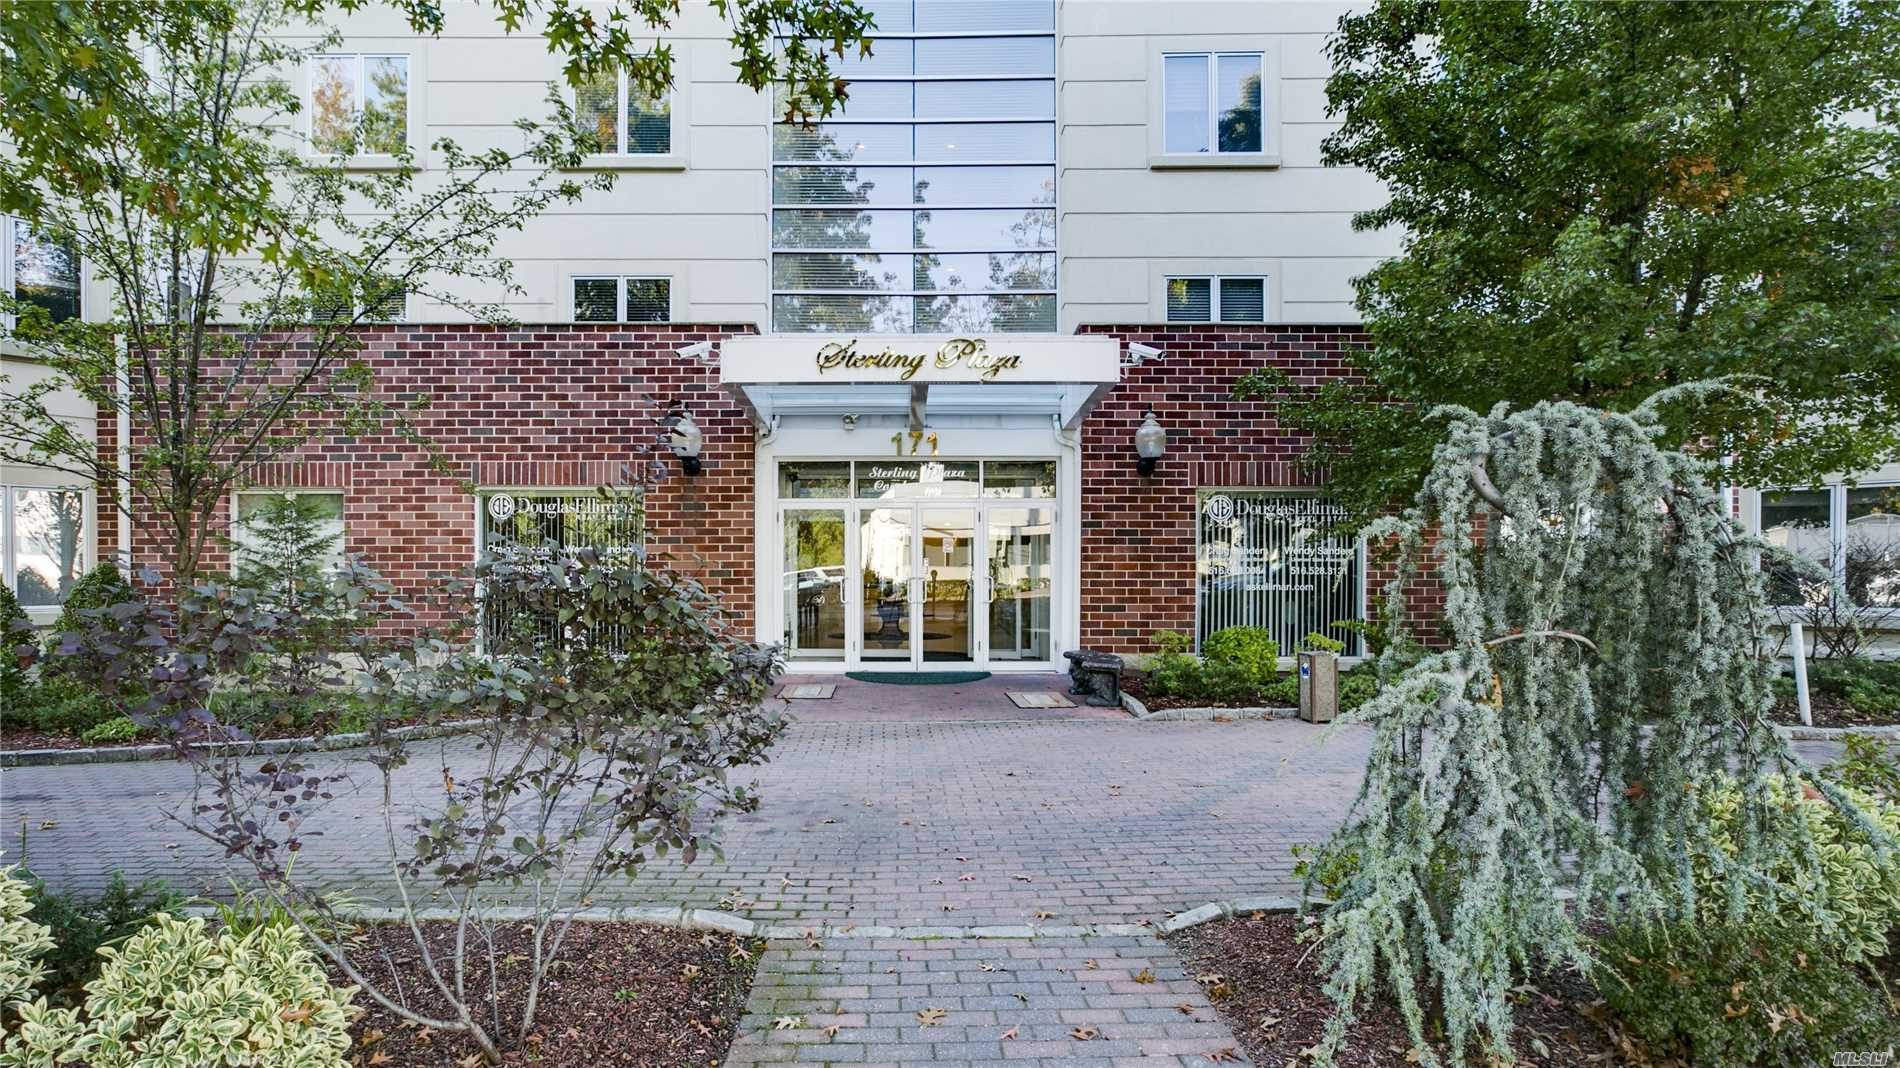 Welcome To Sterling Plaza, Great Neck's Premiere Condominium Building. This Apartment Features 2 Bedrooms With 2.5 Baths, Hardwood Floors, Combo Kitchen, Washer/Dryer & Individual Thermostat. The Building Features 24 Hour Doorman, Fitness Center, Community Room, & Dedicated Garage Parking.